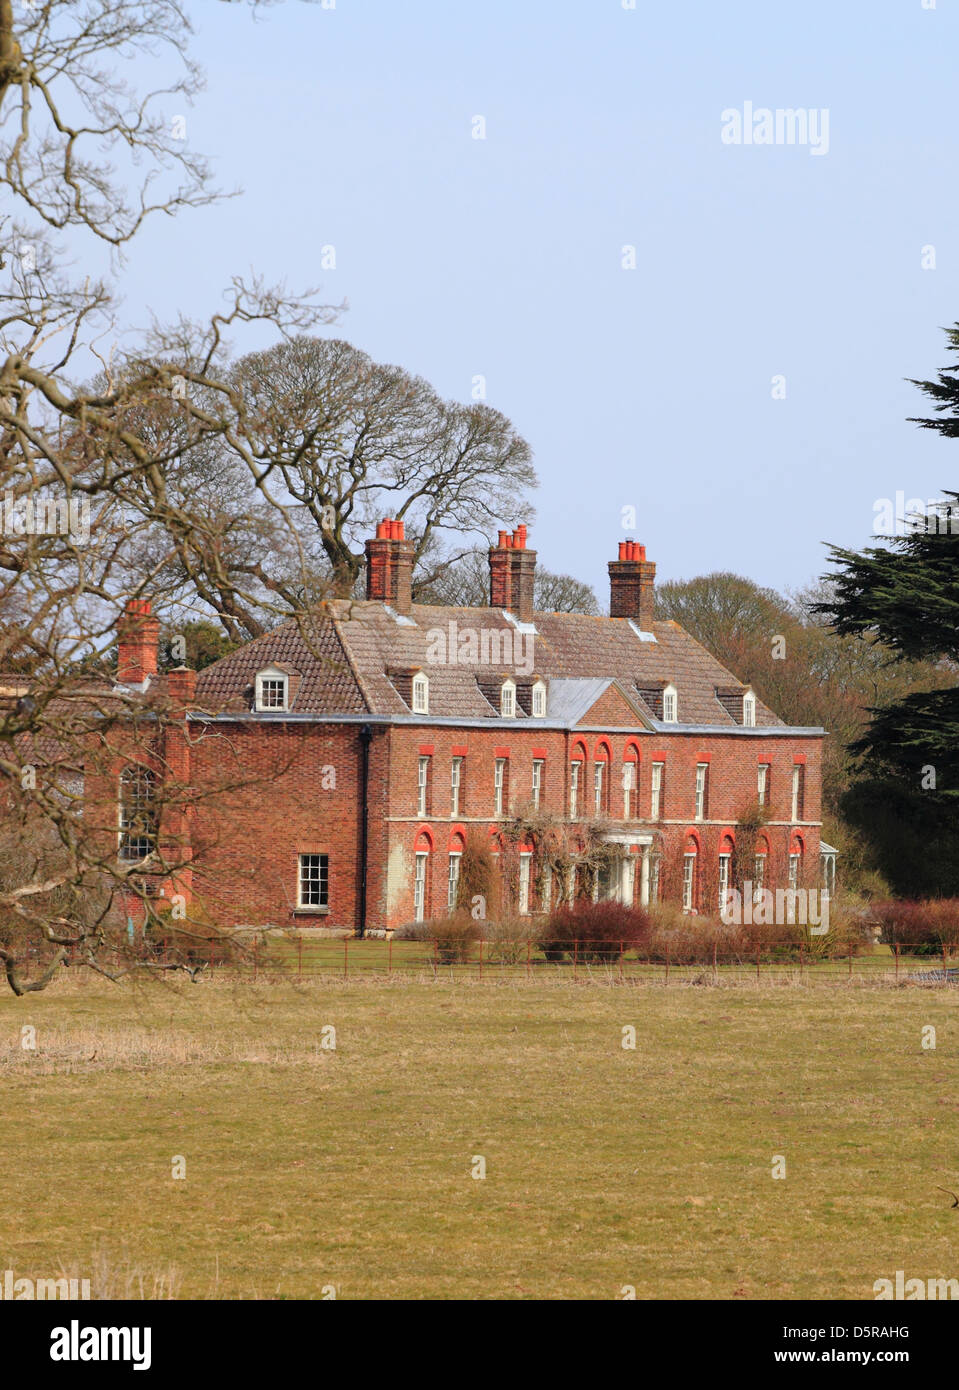 Anmer Hall, at Anmer in Norfolk on the Sandringham estate. Stock Photo